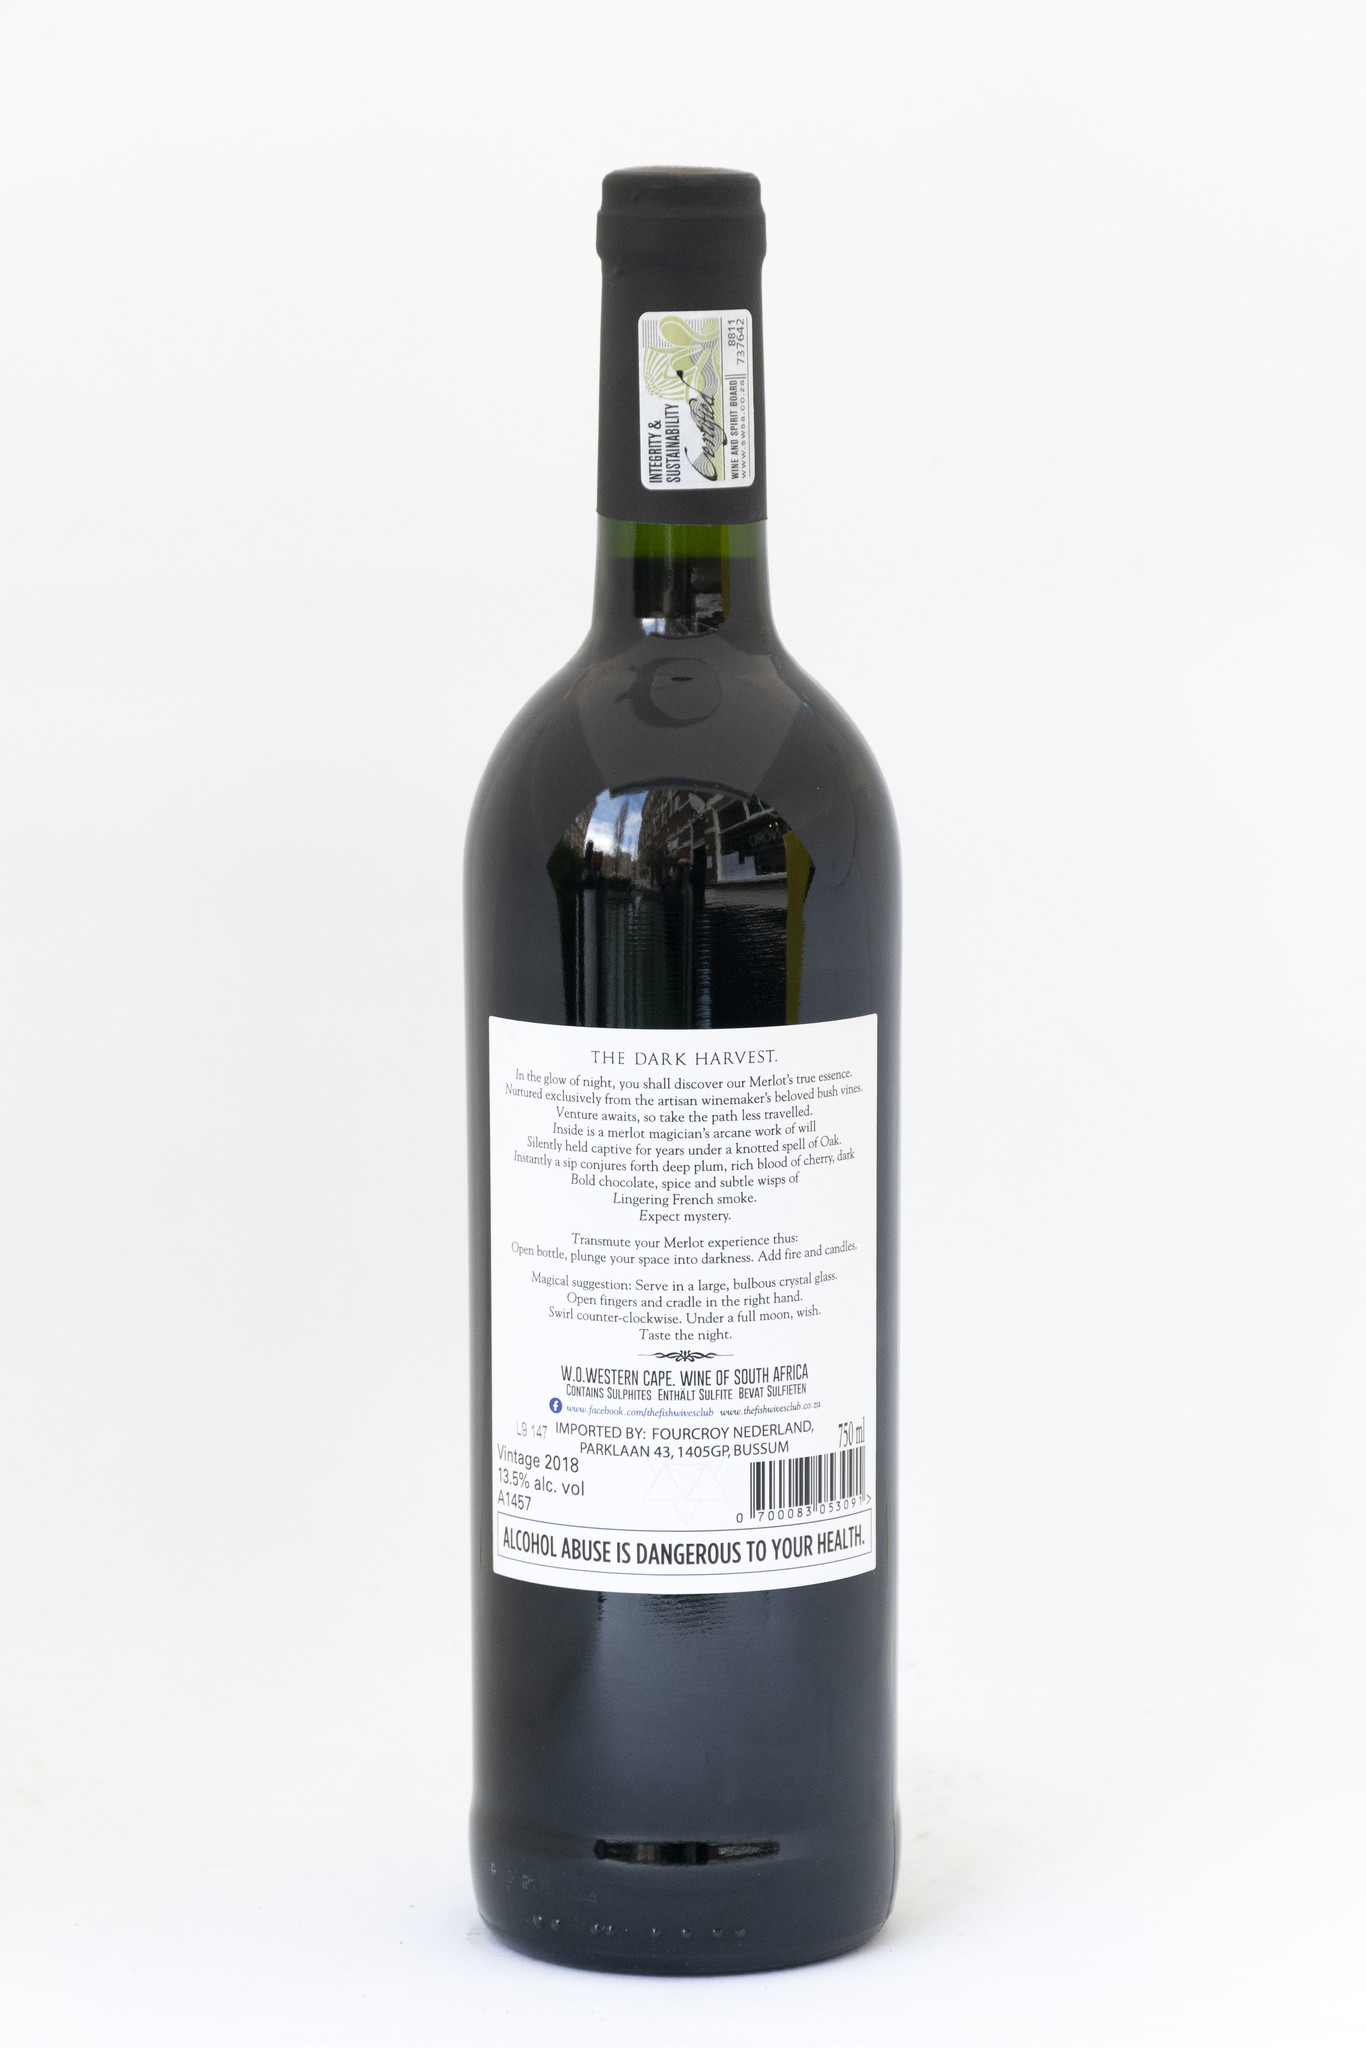 The Black Earth| The Fishwives club | Boutique Winery  | Stellenbosch |Merlot | 2018